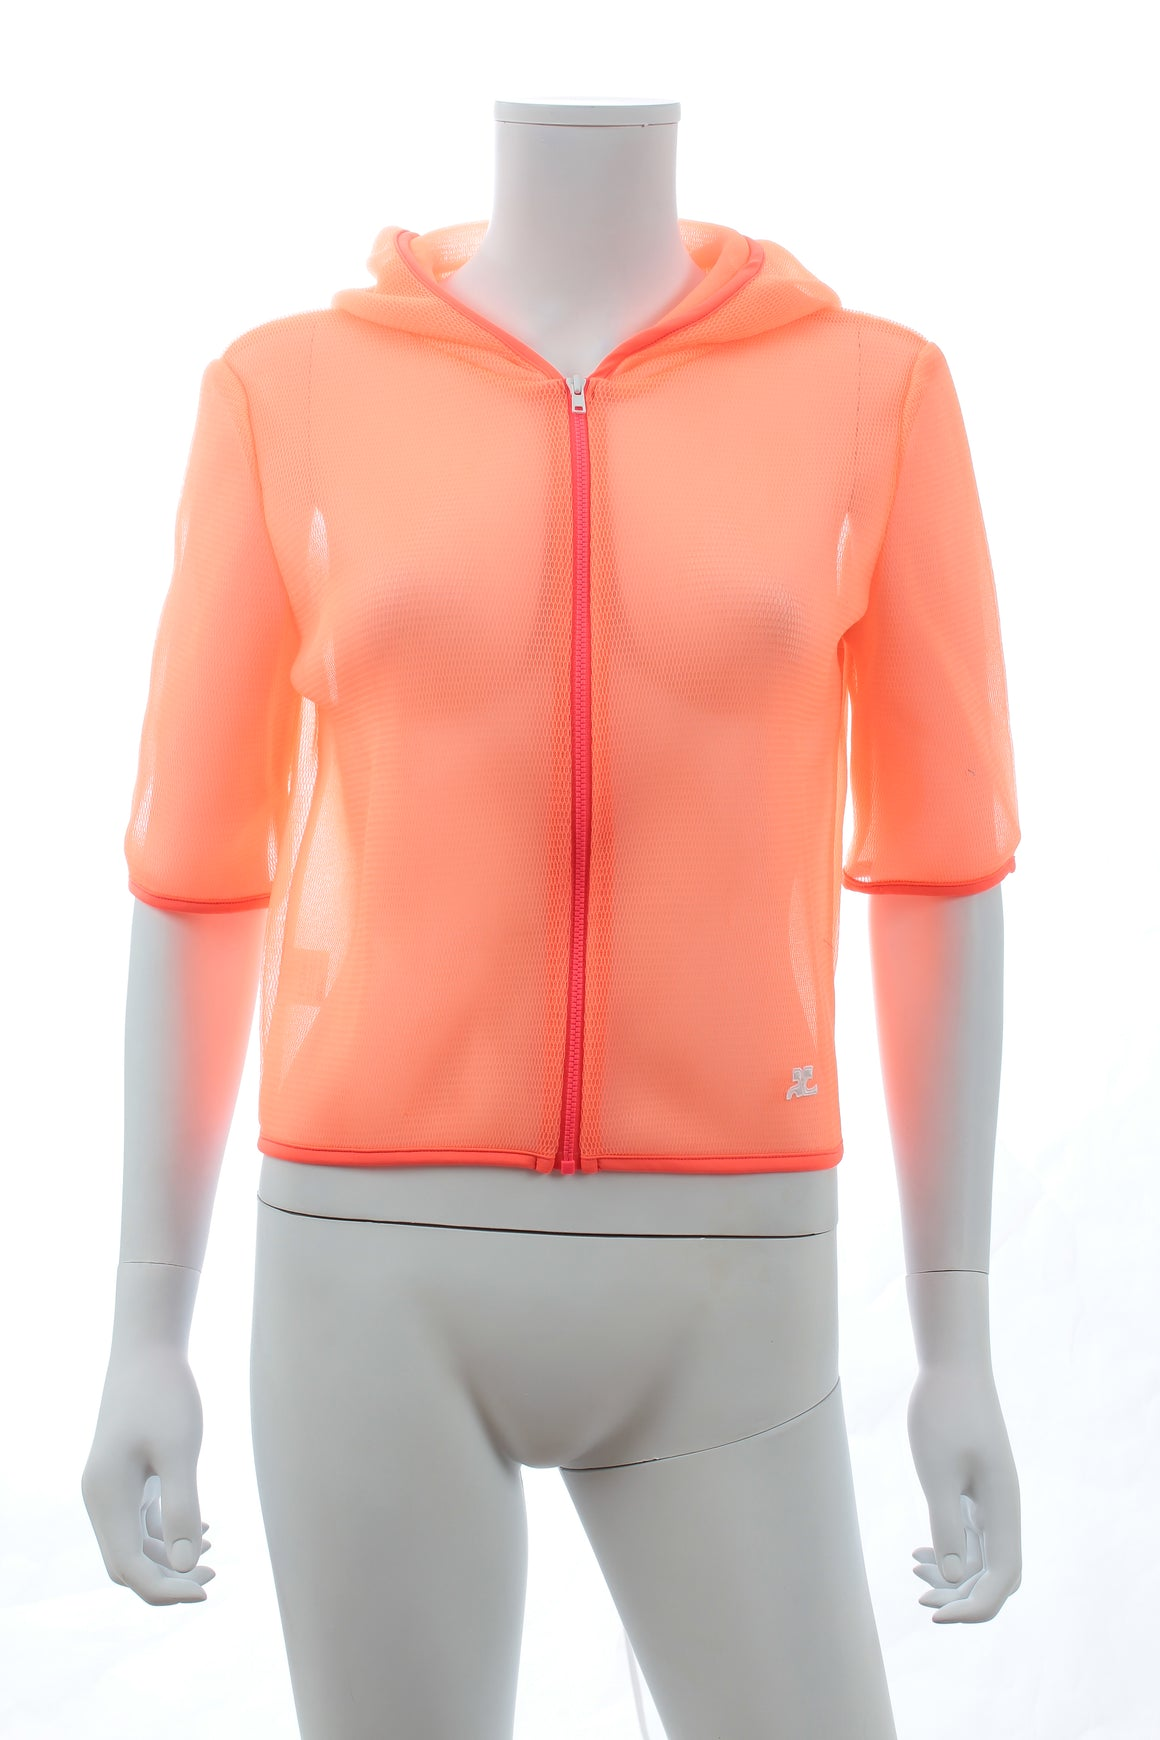 Courrèges Logo Mesh Zippered Hooded Jacket